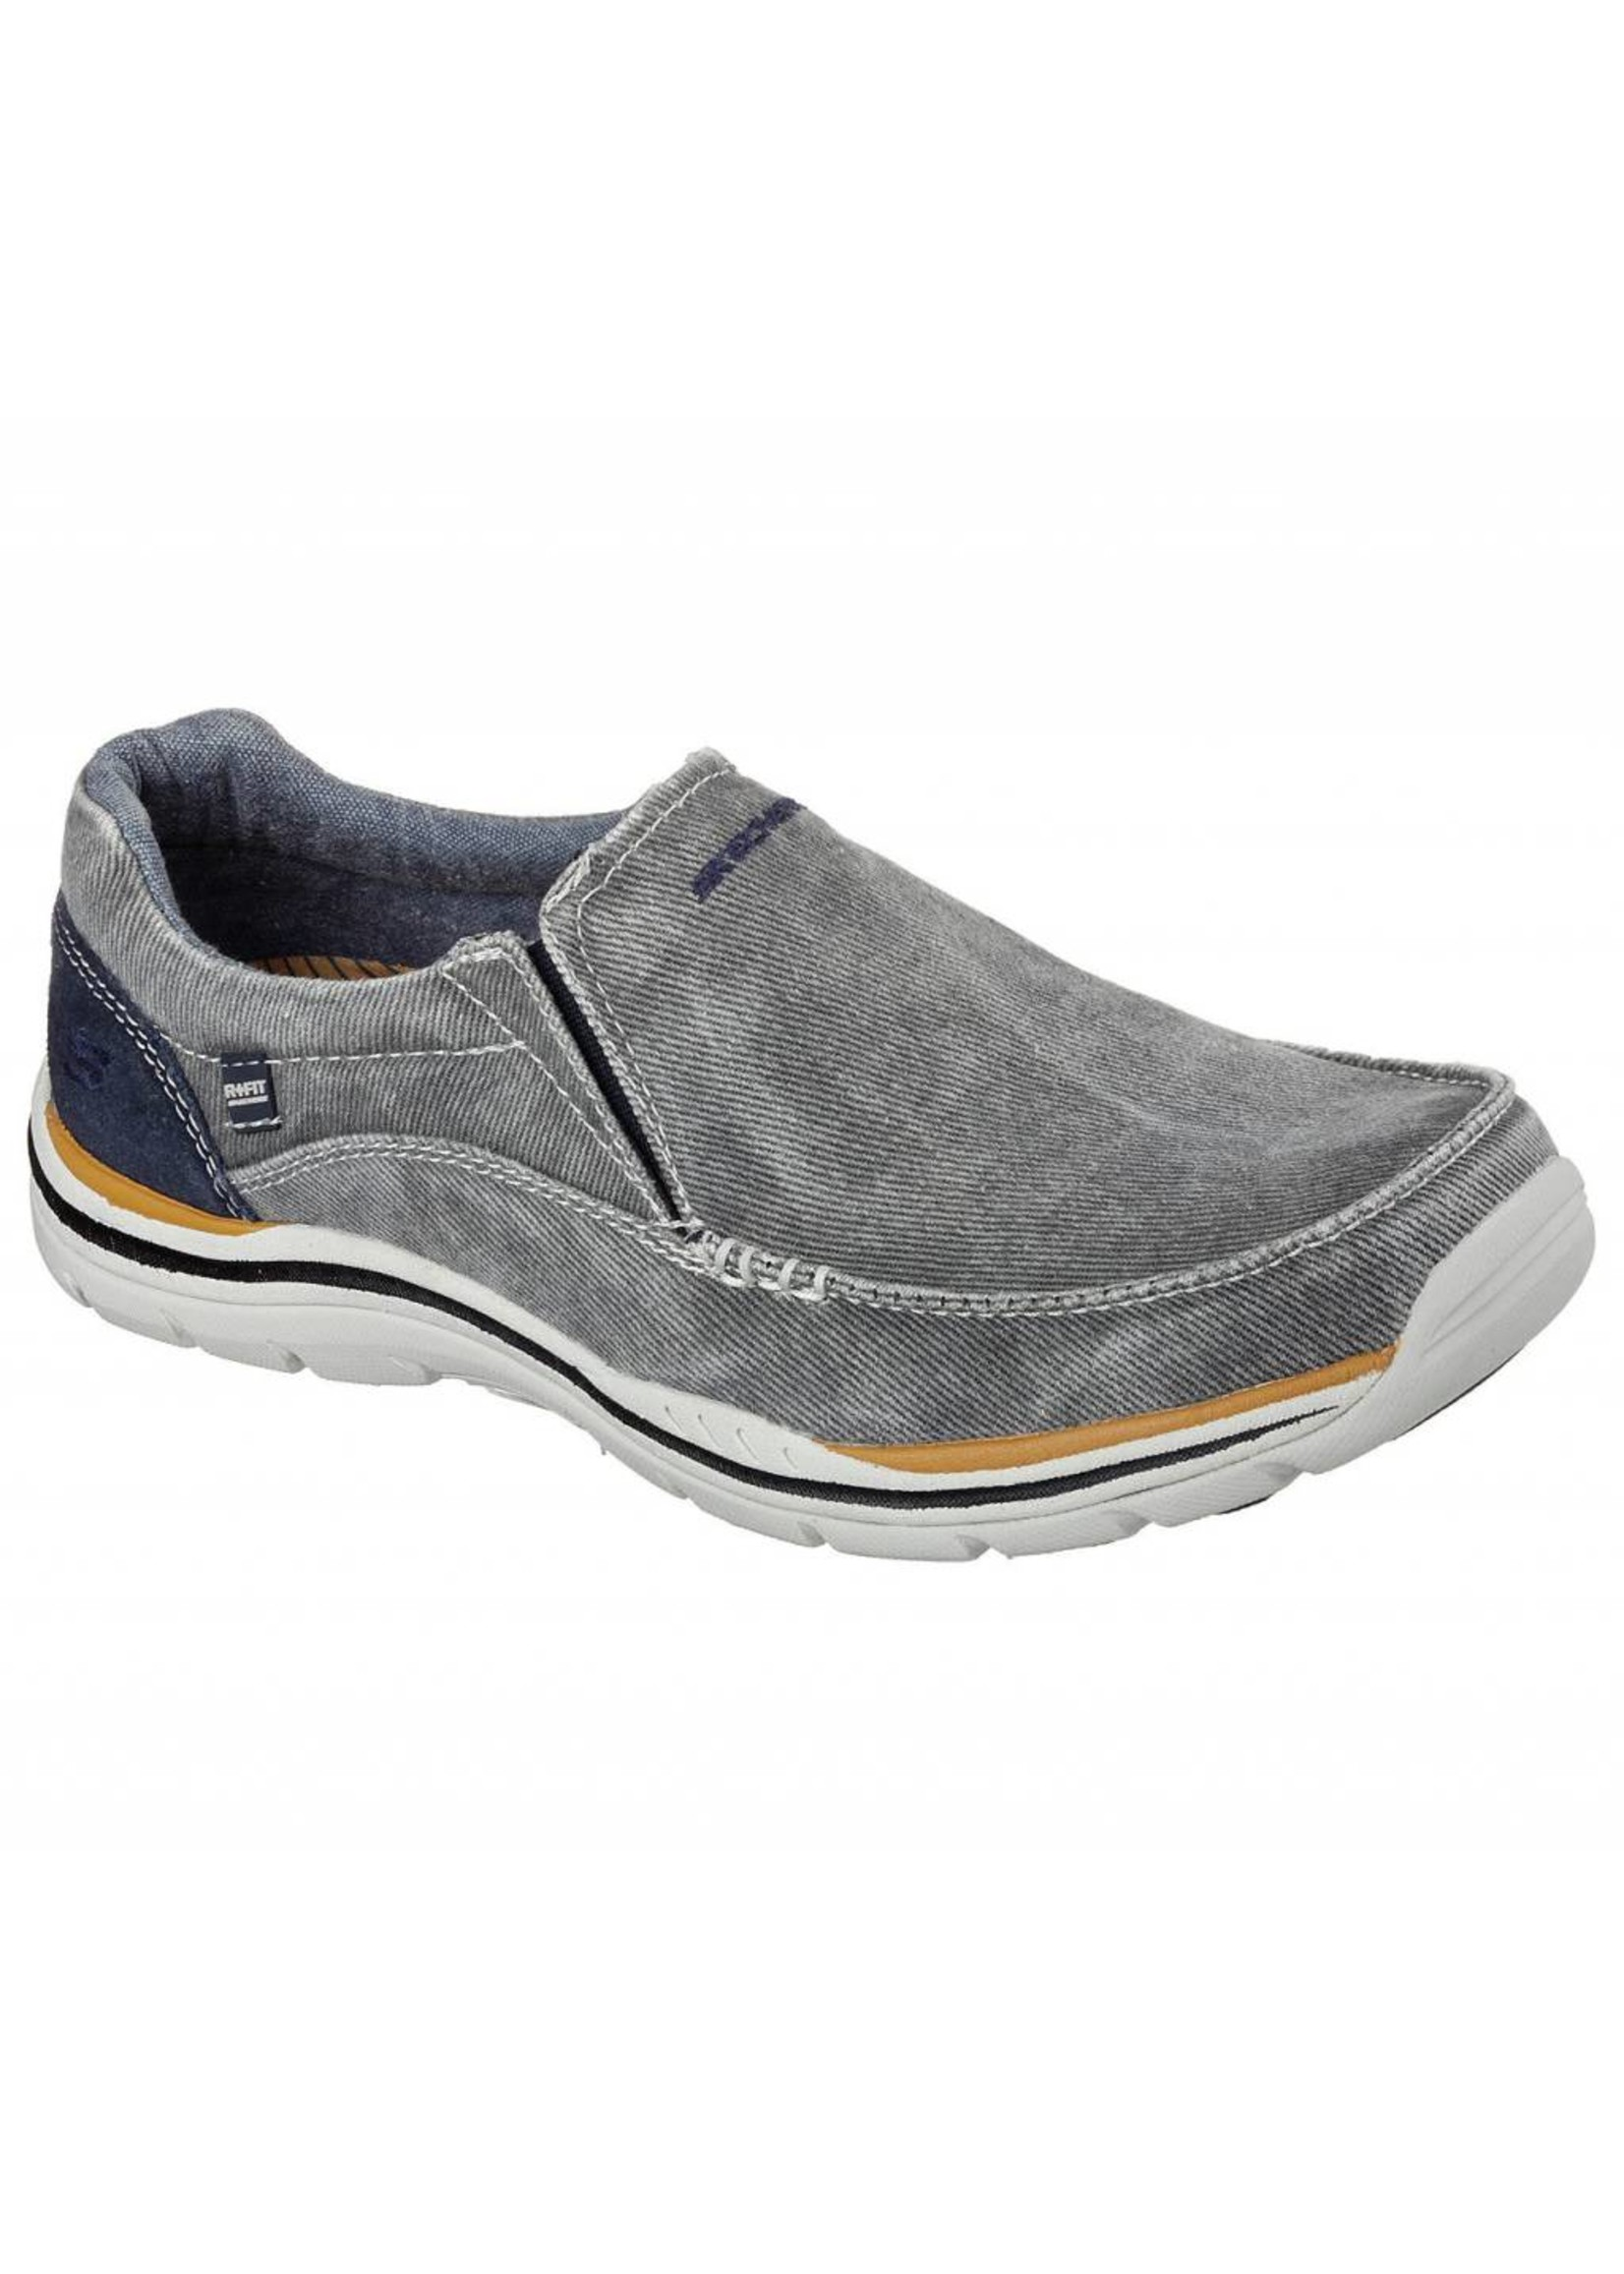 Skechers EXPECTED - AVILLO 64109